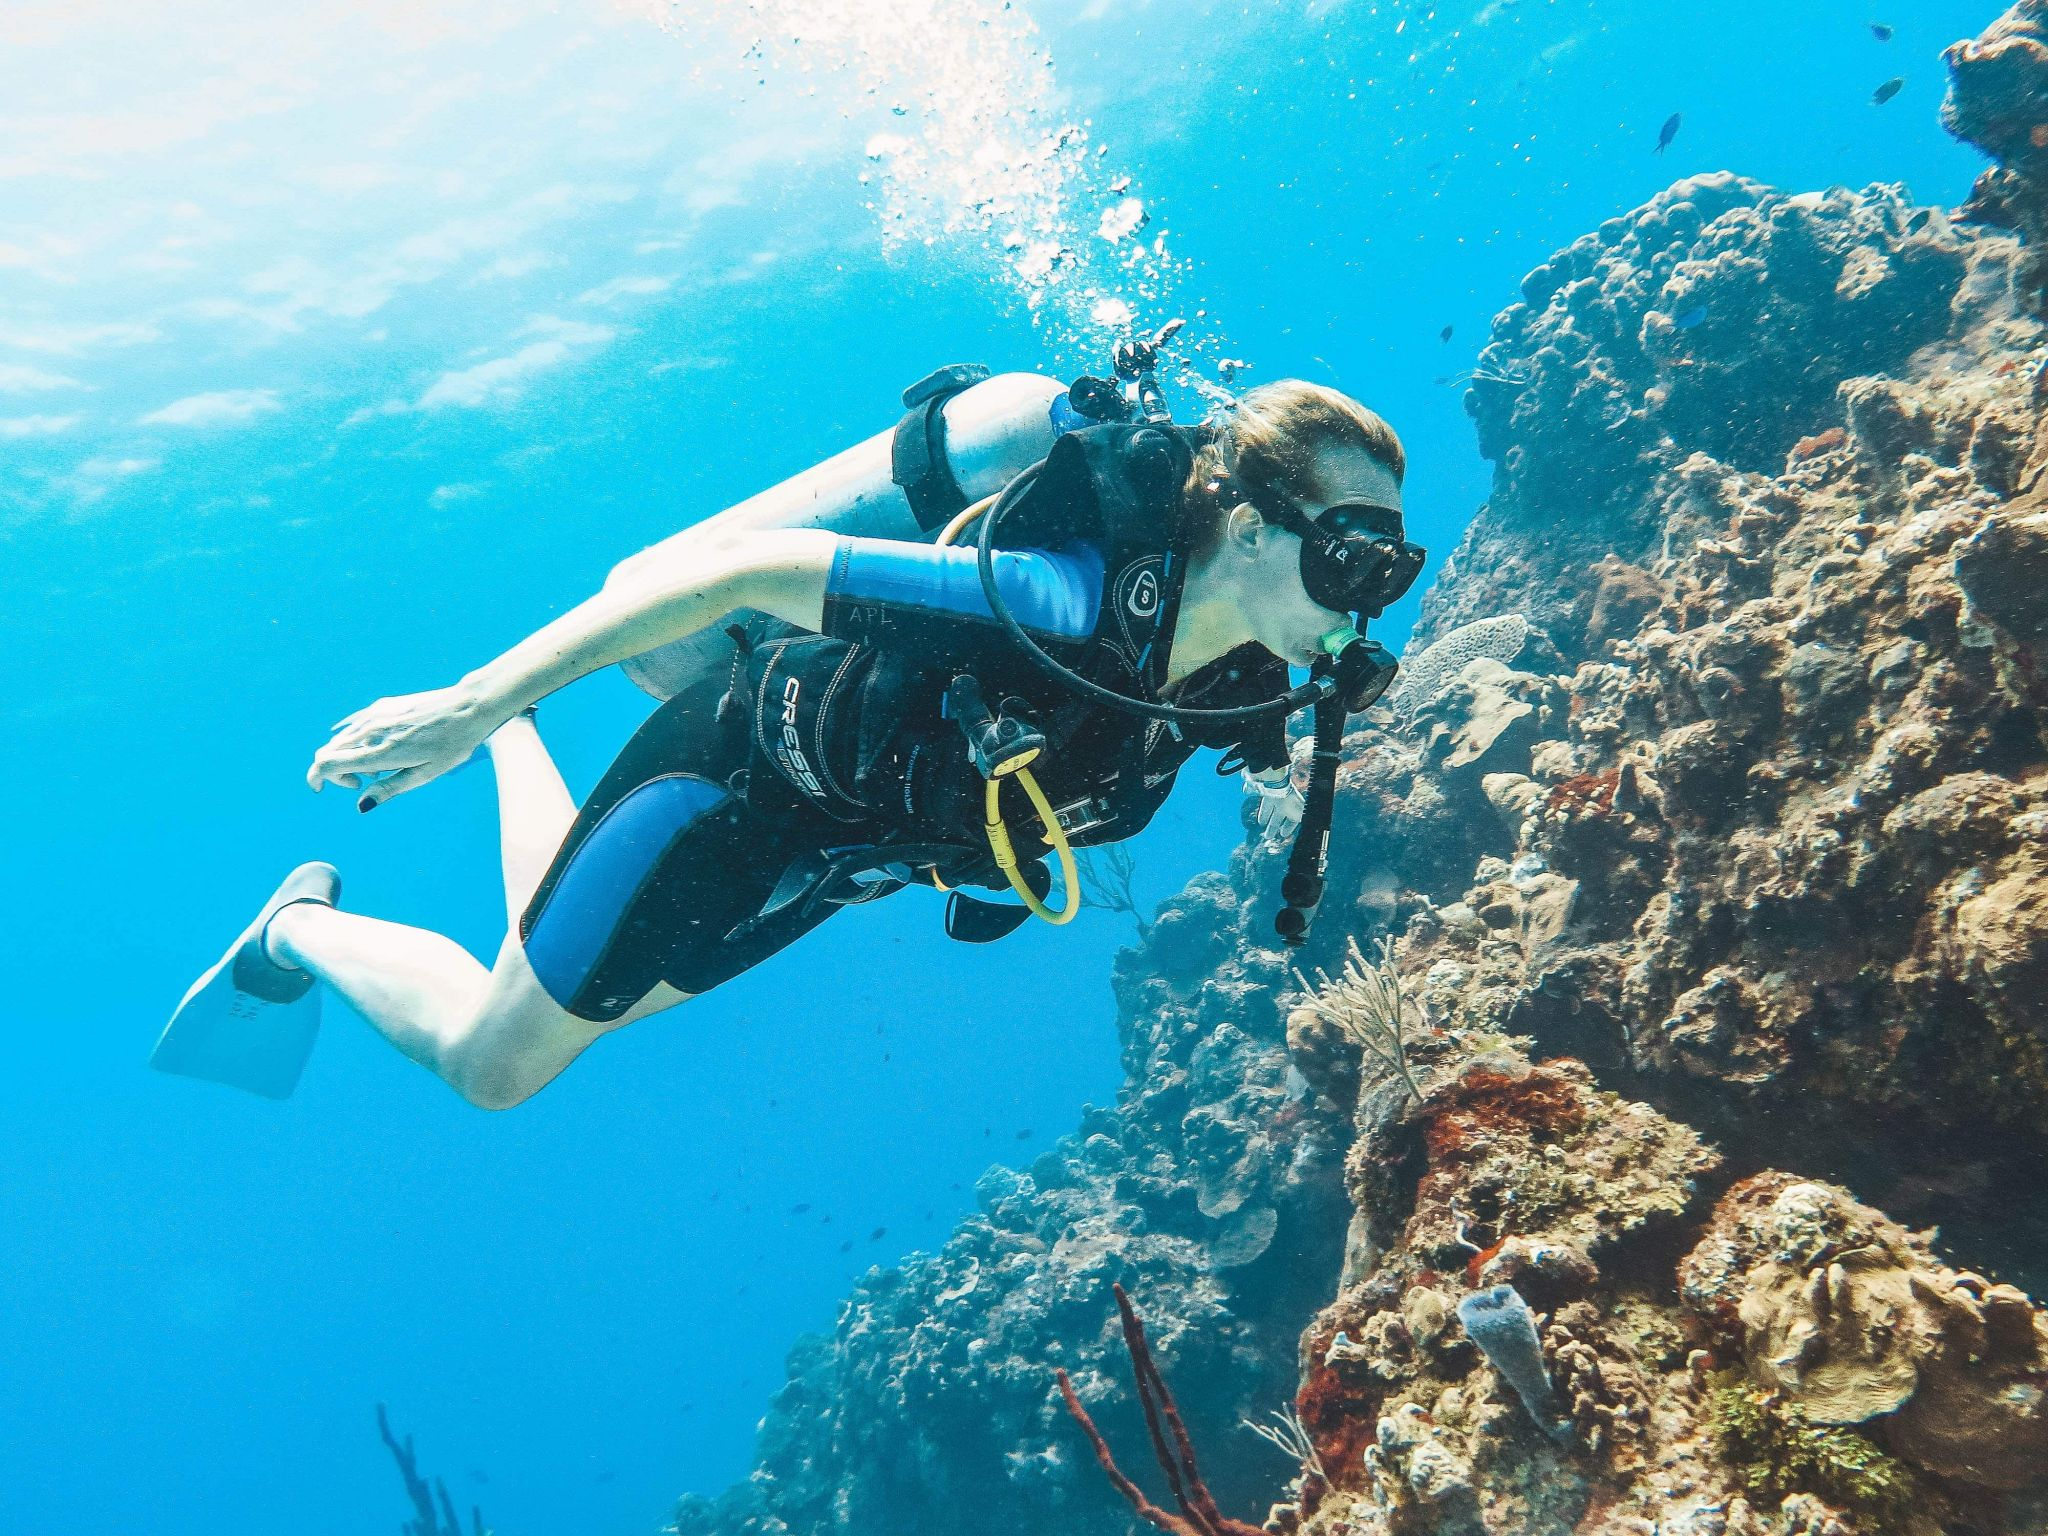 The Ultimate Guide to Diving in Cozumel | Cozumel dive sites, companies & accommodation